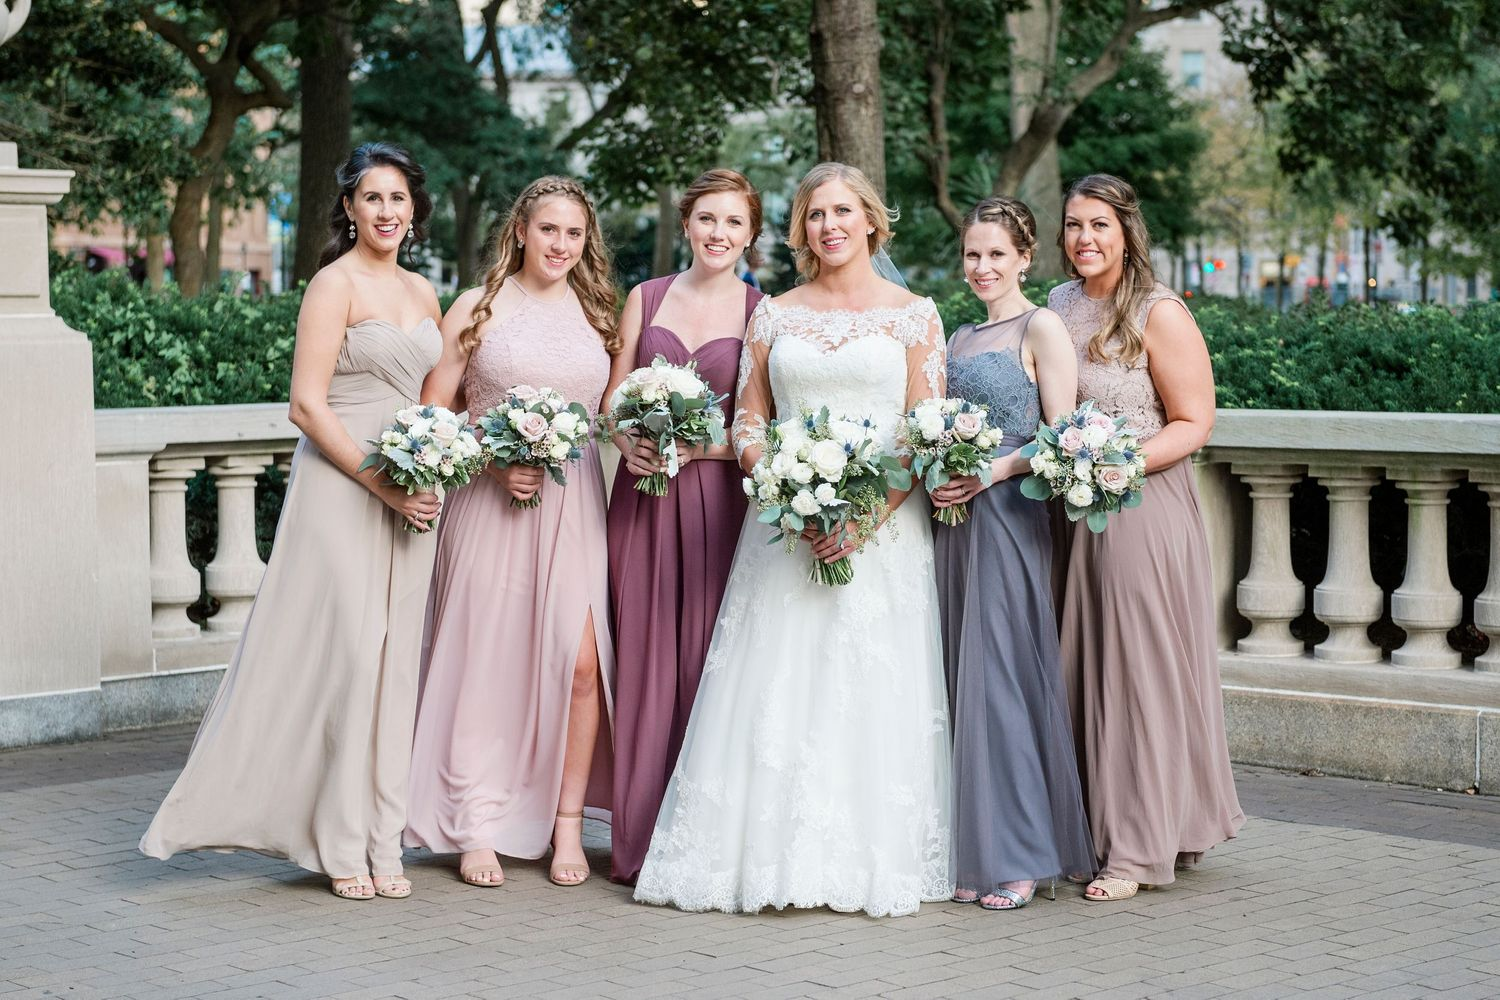 Bride and bridesmaids in Rittenhouse Square in Philadelphia